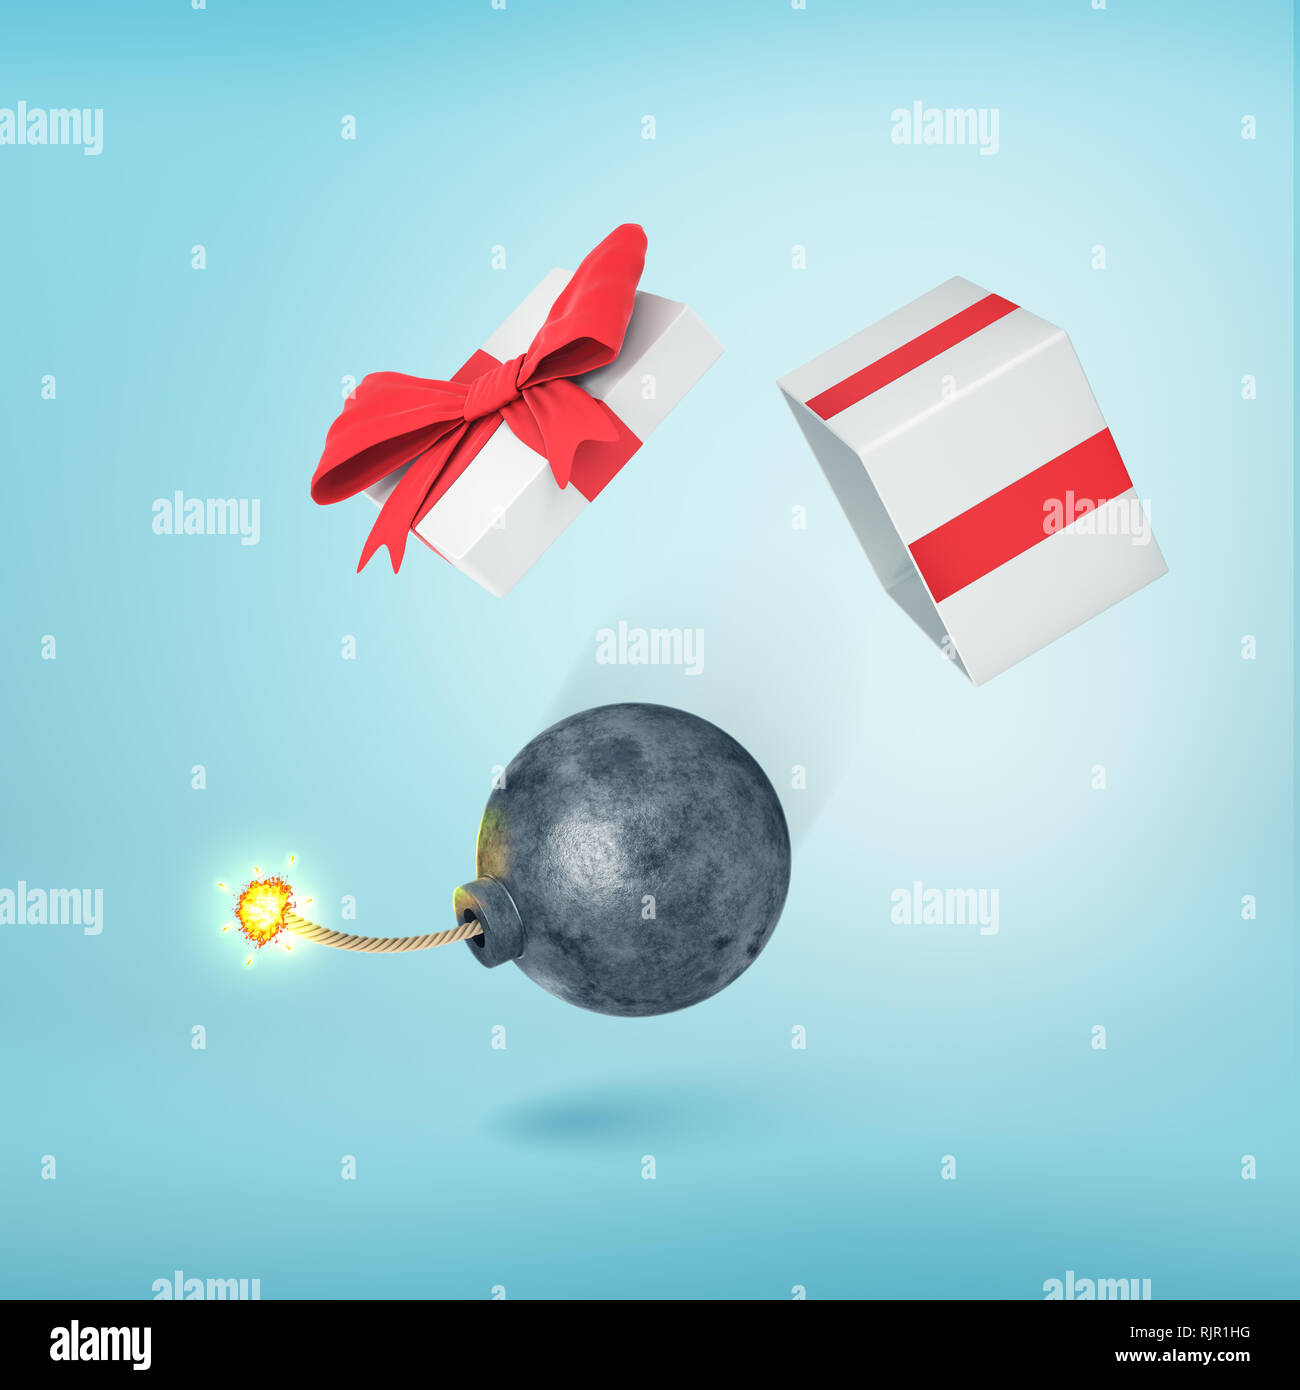 947cf94e1e093 3d rendering of an overturned gift box with a black iron bomb falling out  of it